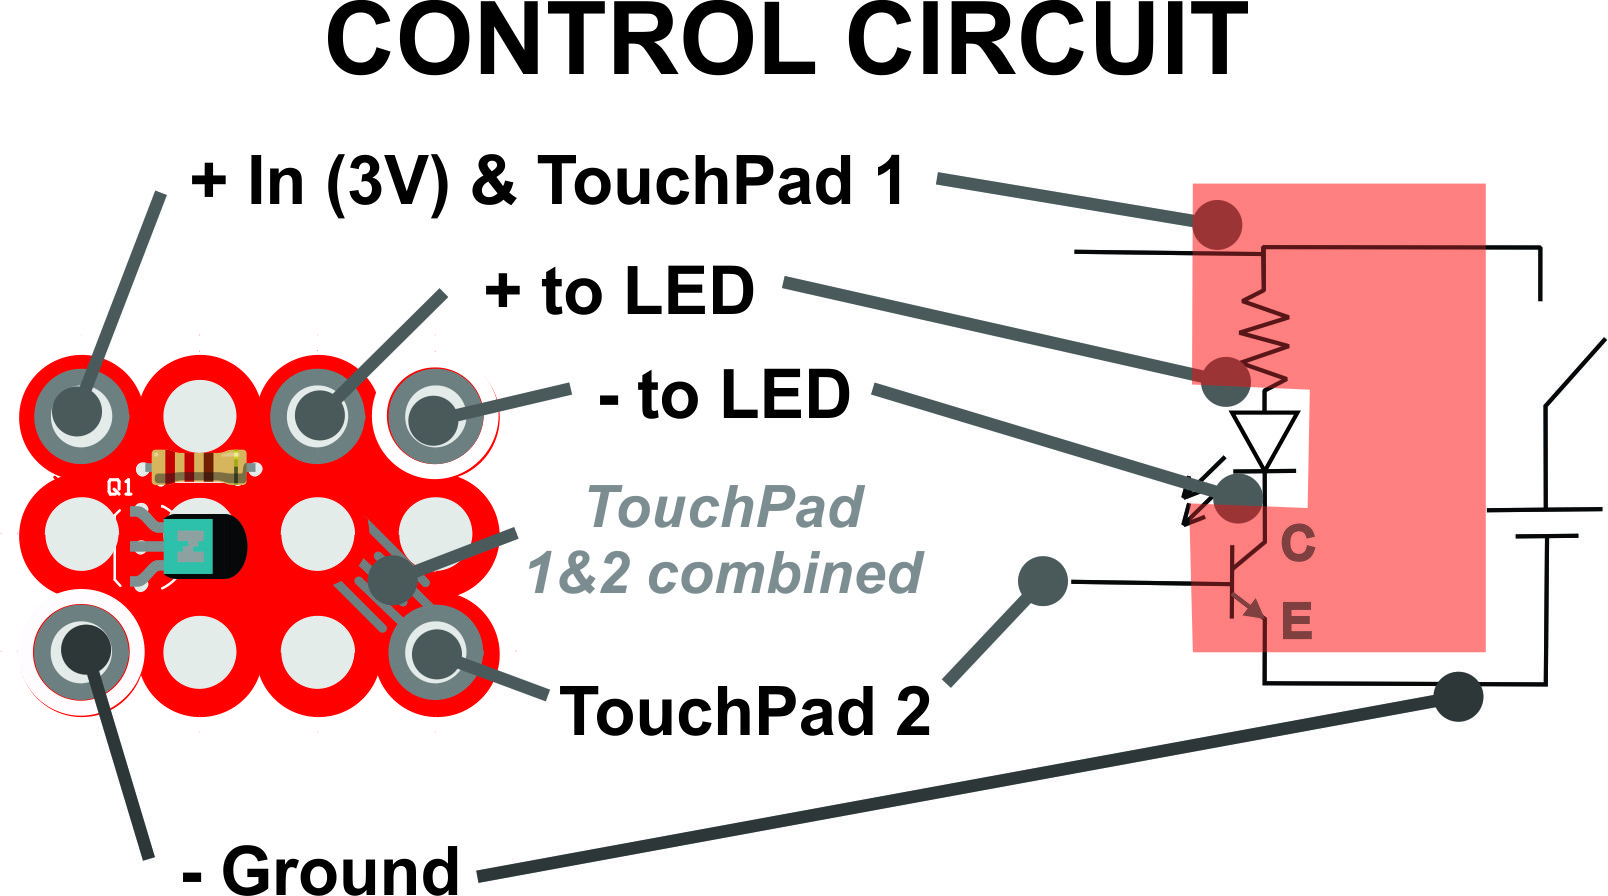 Touchpad Control Circuit